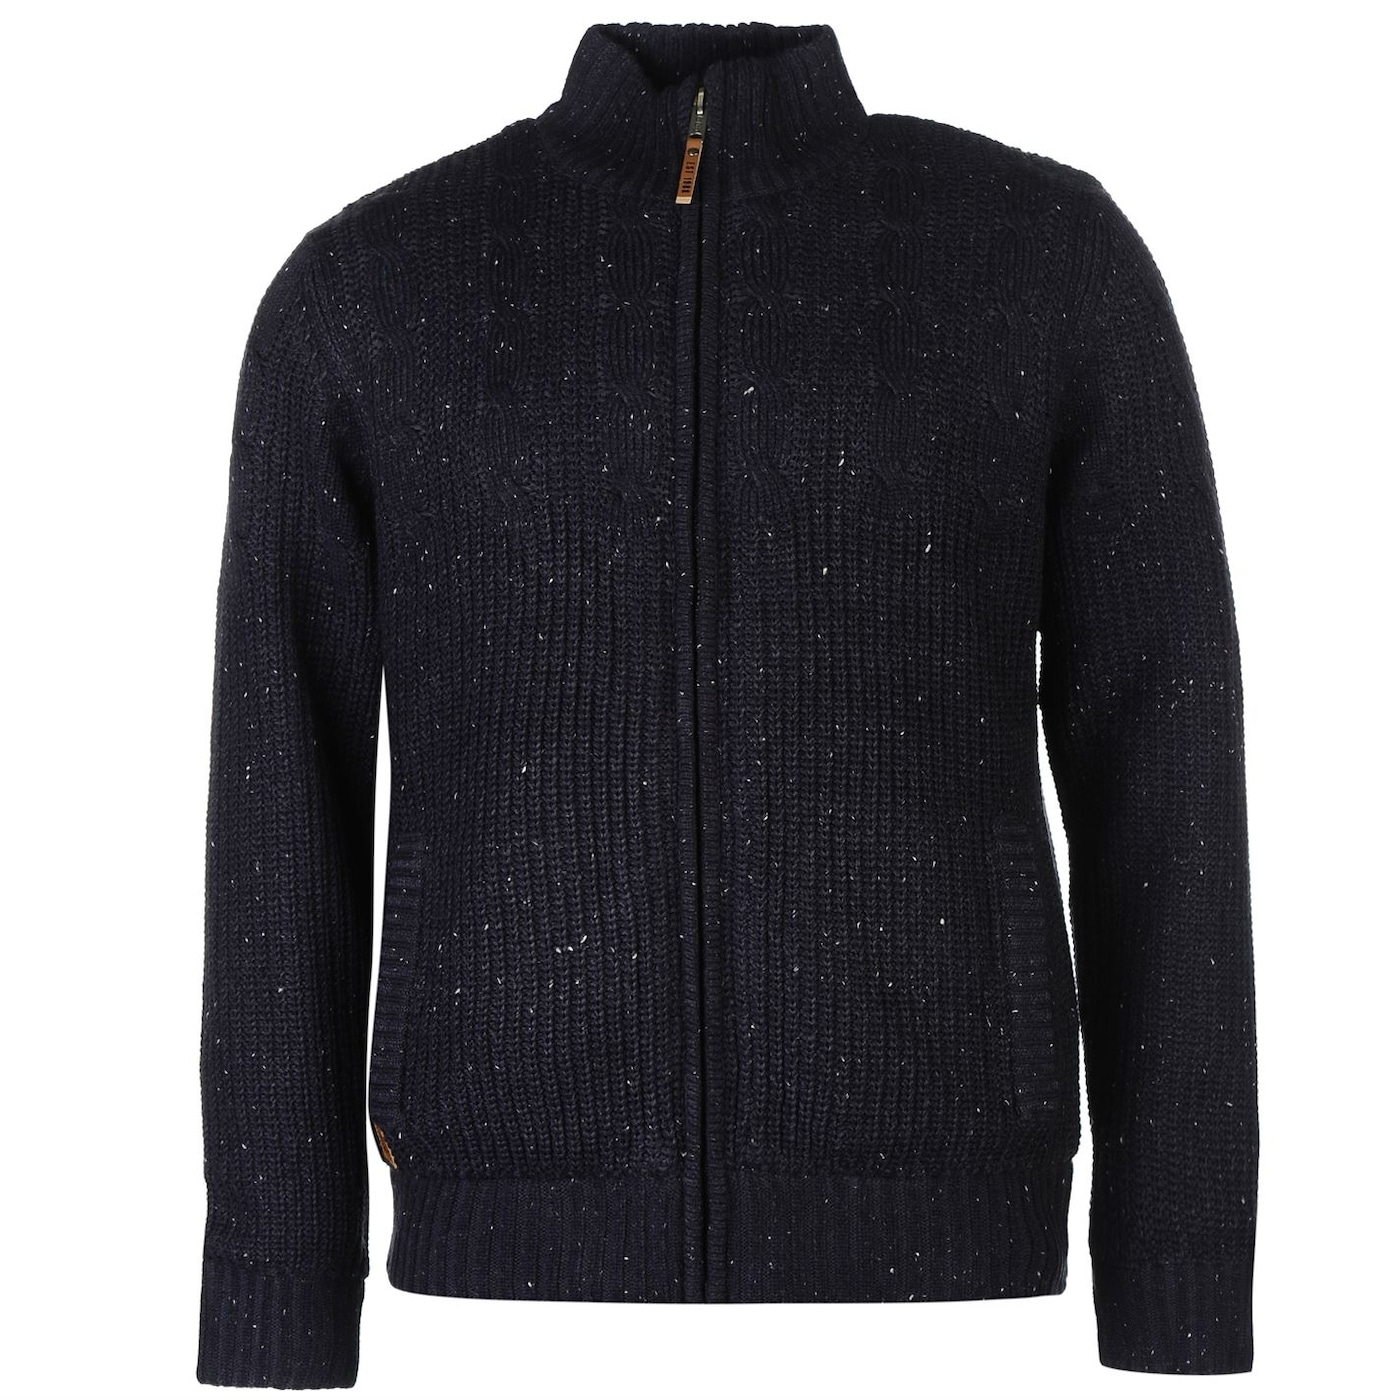 Lee Cooper Zip Through Cable Knit Nep Cardigan Mens